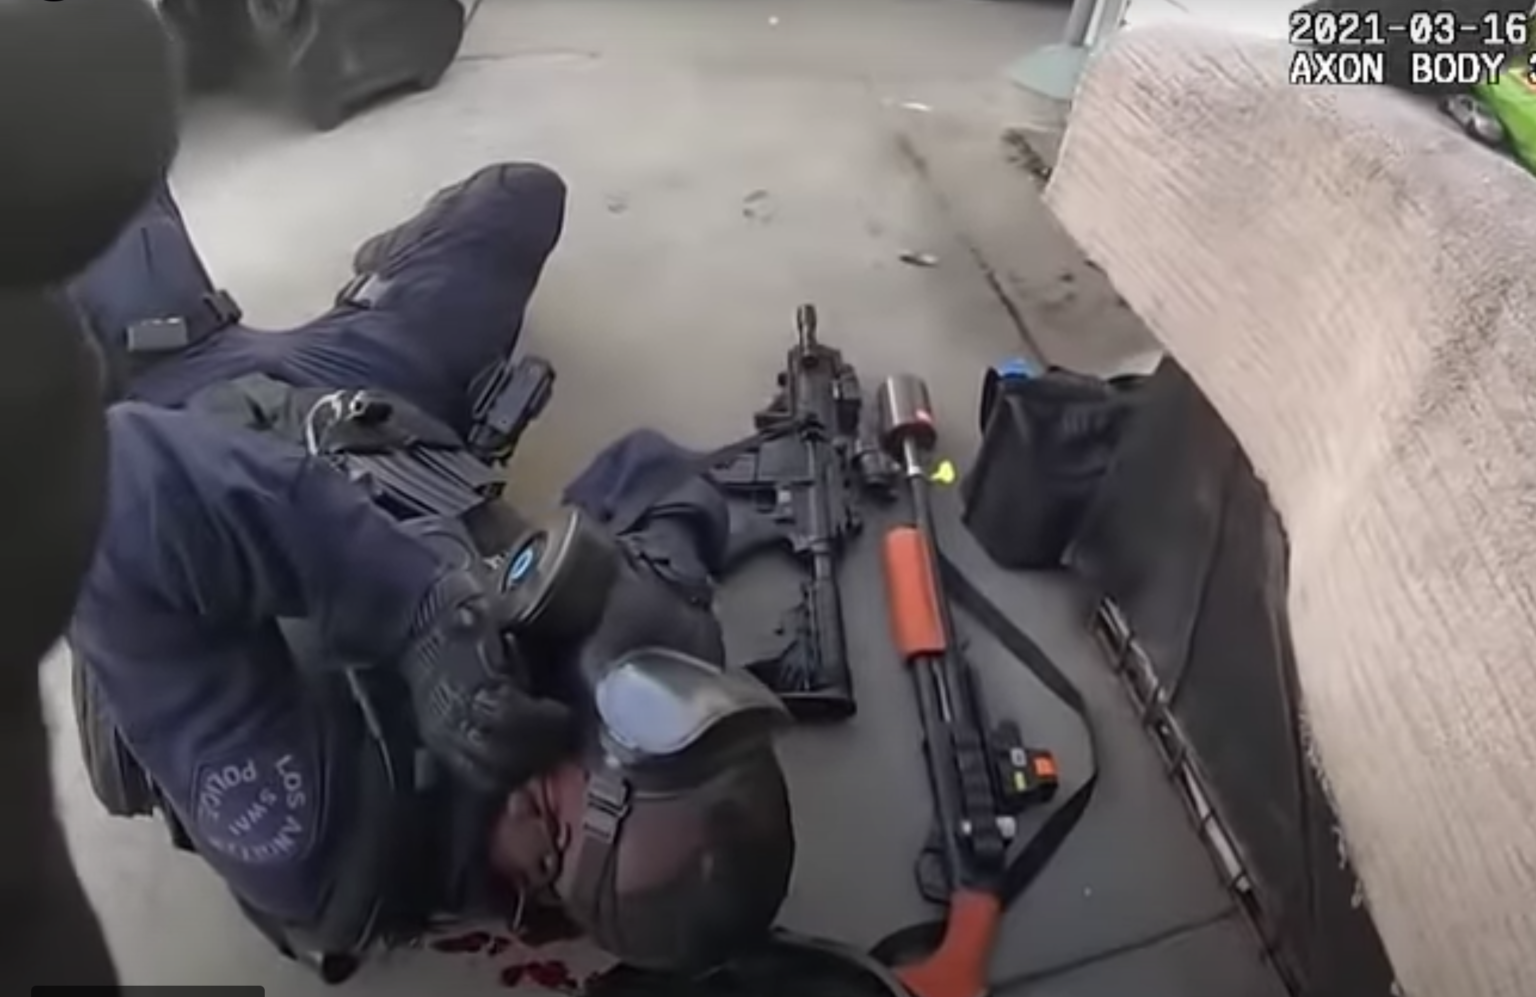 Video: LAPD SWAT officer shot in face during armed standoff - gunman taken out seconds later